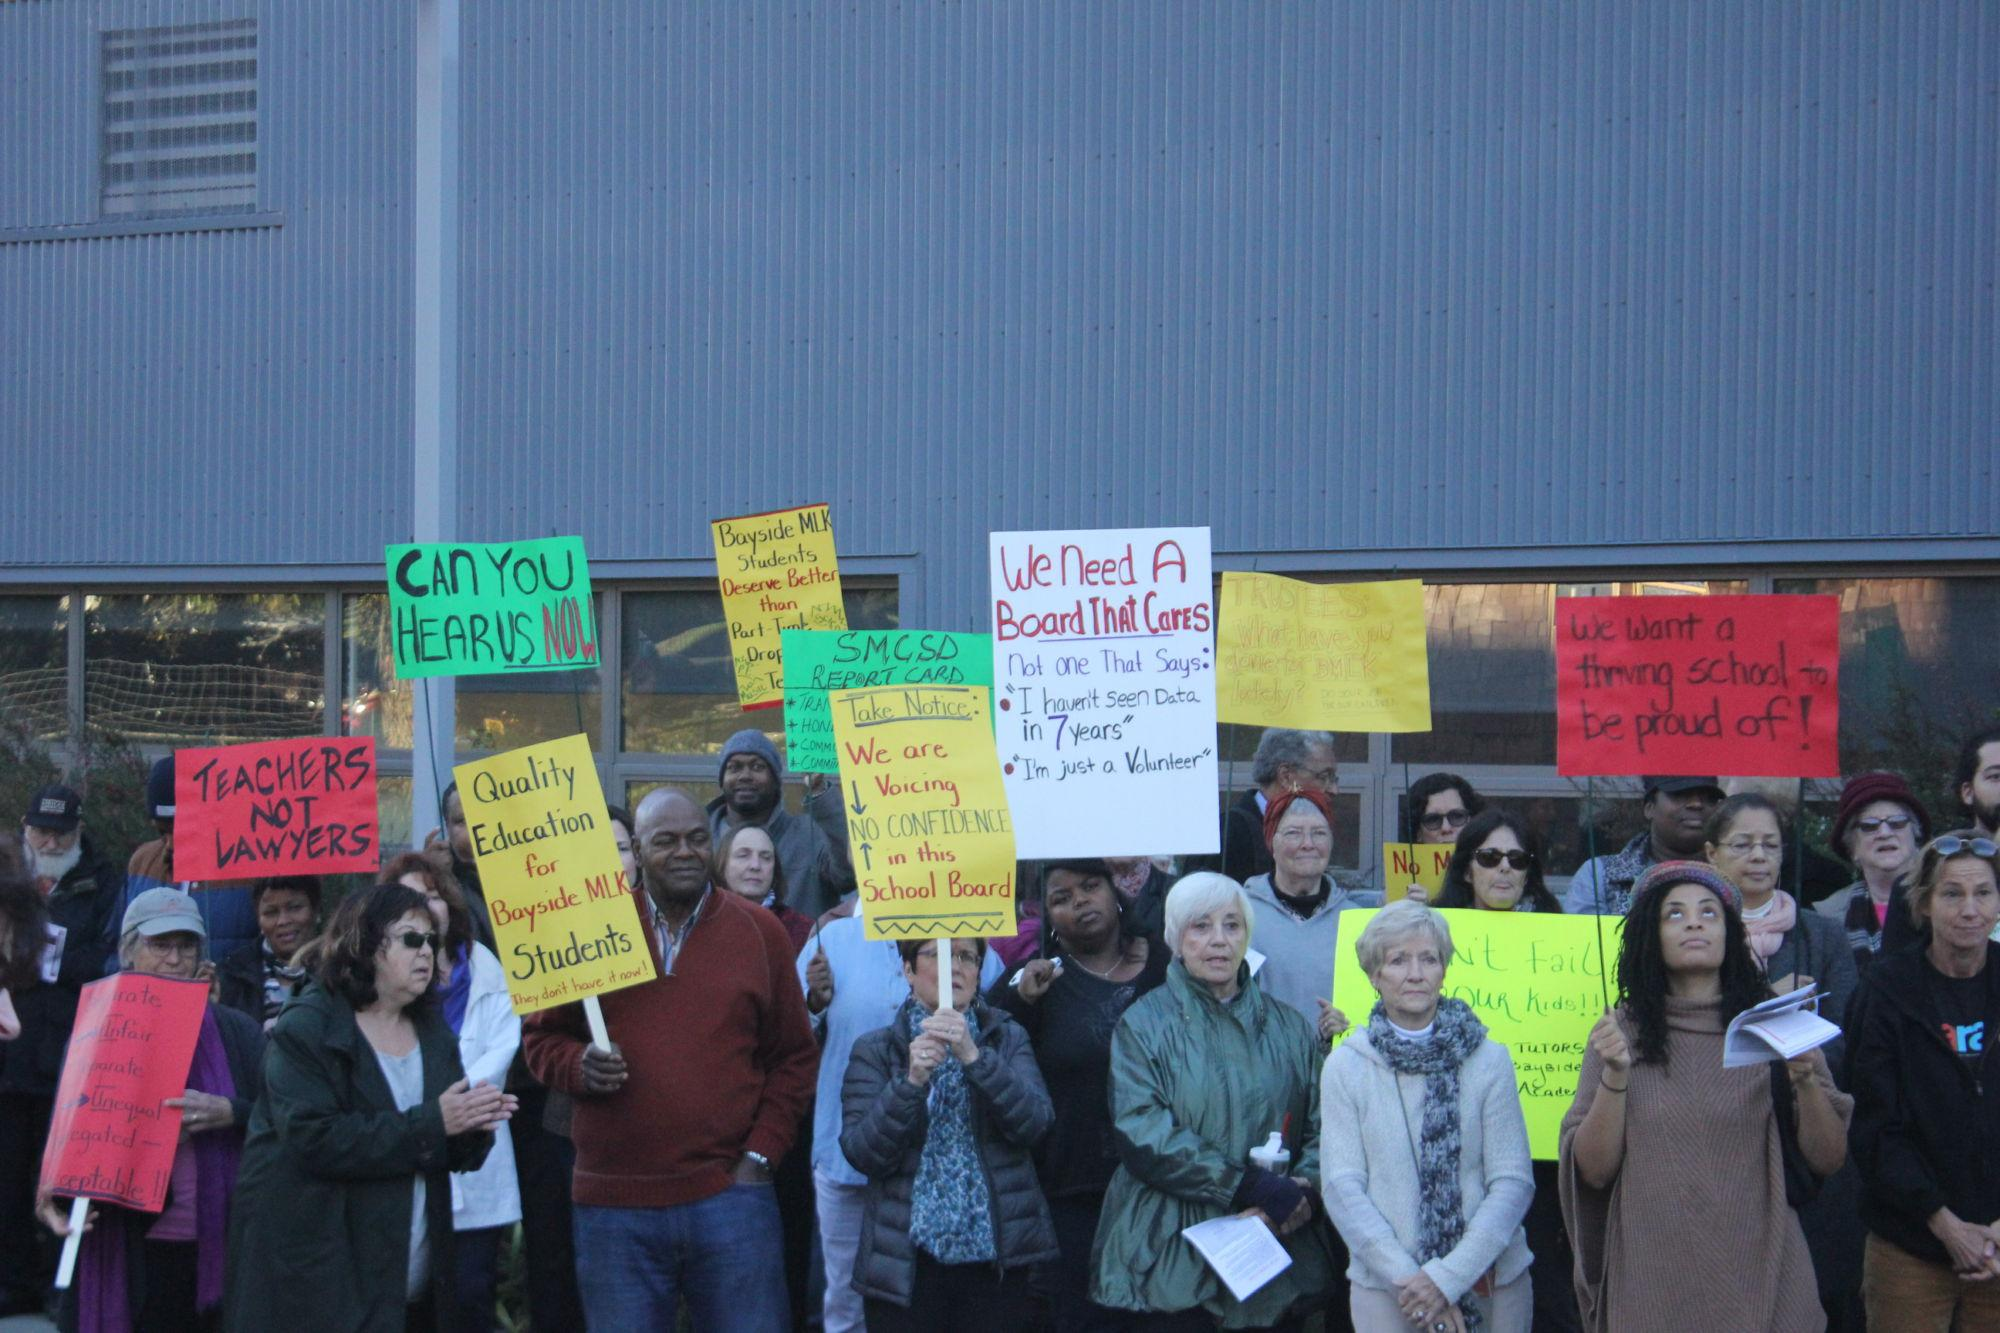 Community members protest learning conditions at Marin City school